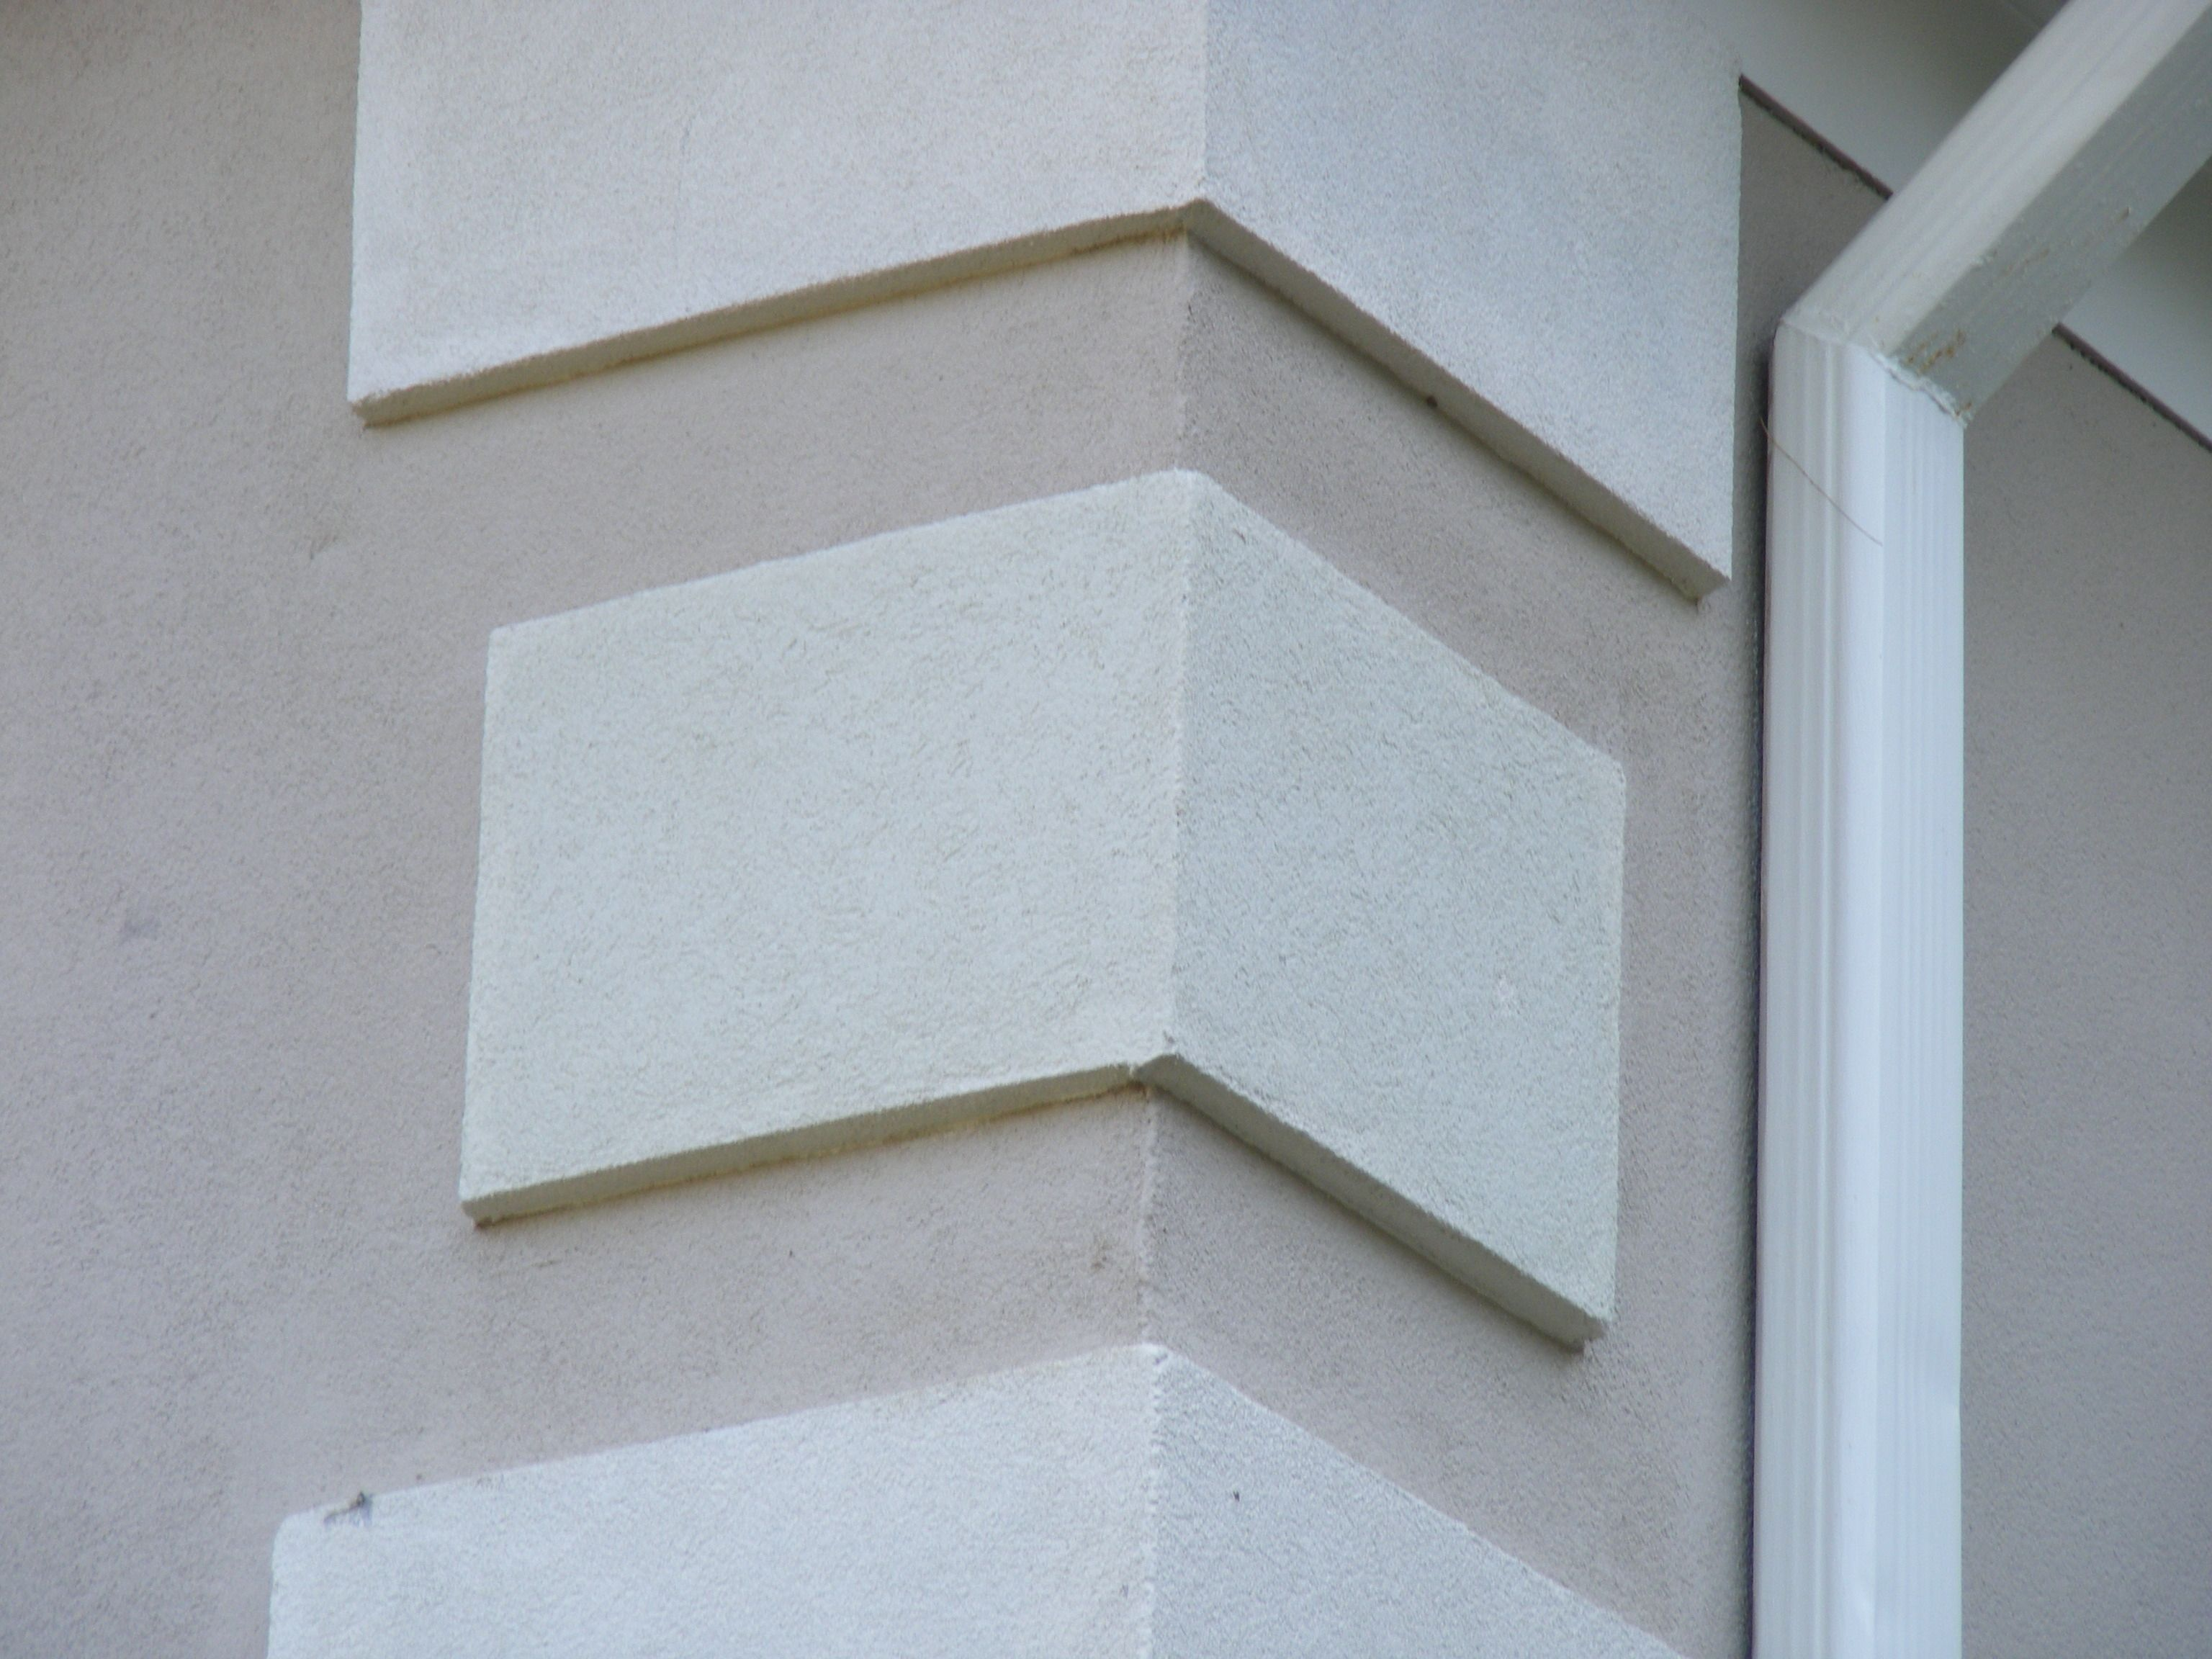 Quoins Pronounced Quot Coins Quot Are Often Found On The Corners